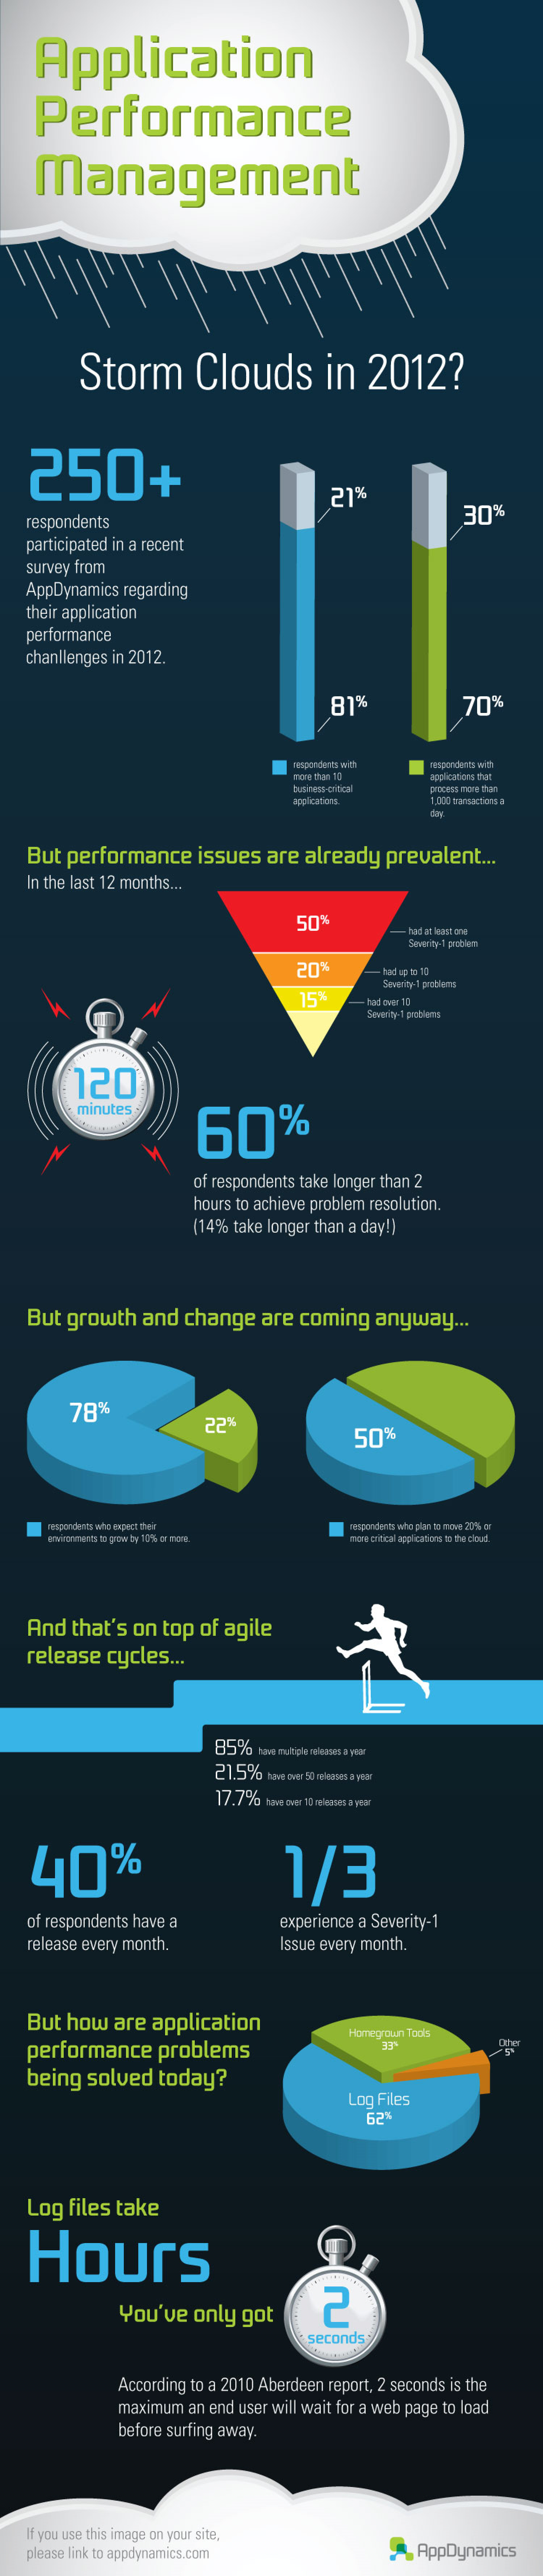 Application Performance Management: Storm Clouds in 2012? Infographic